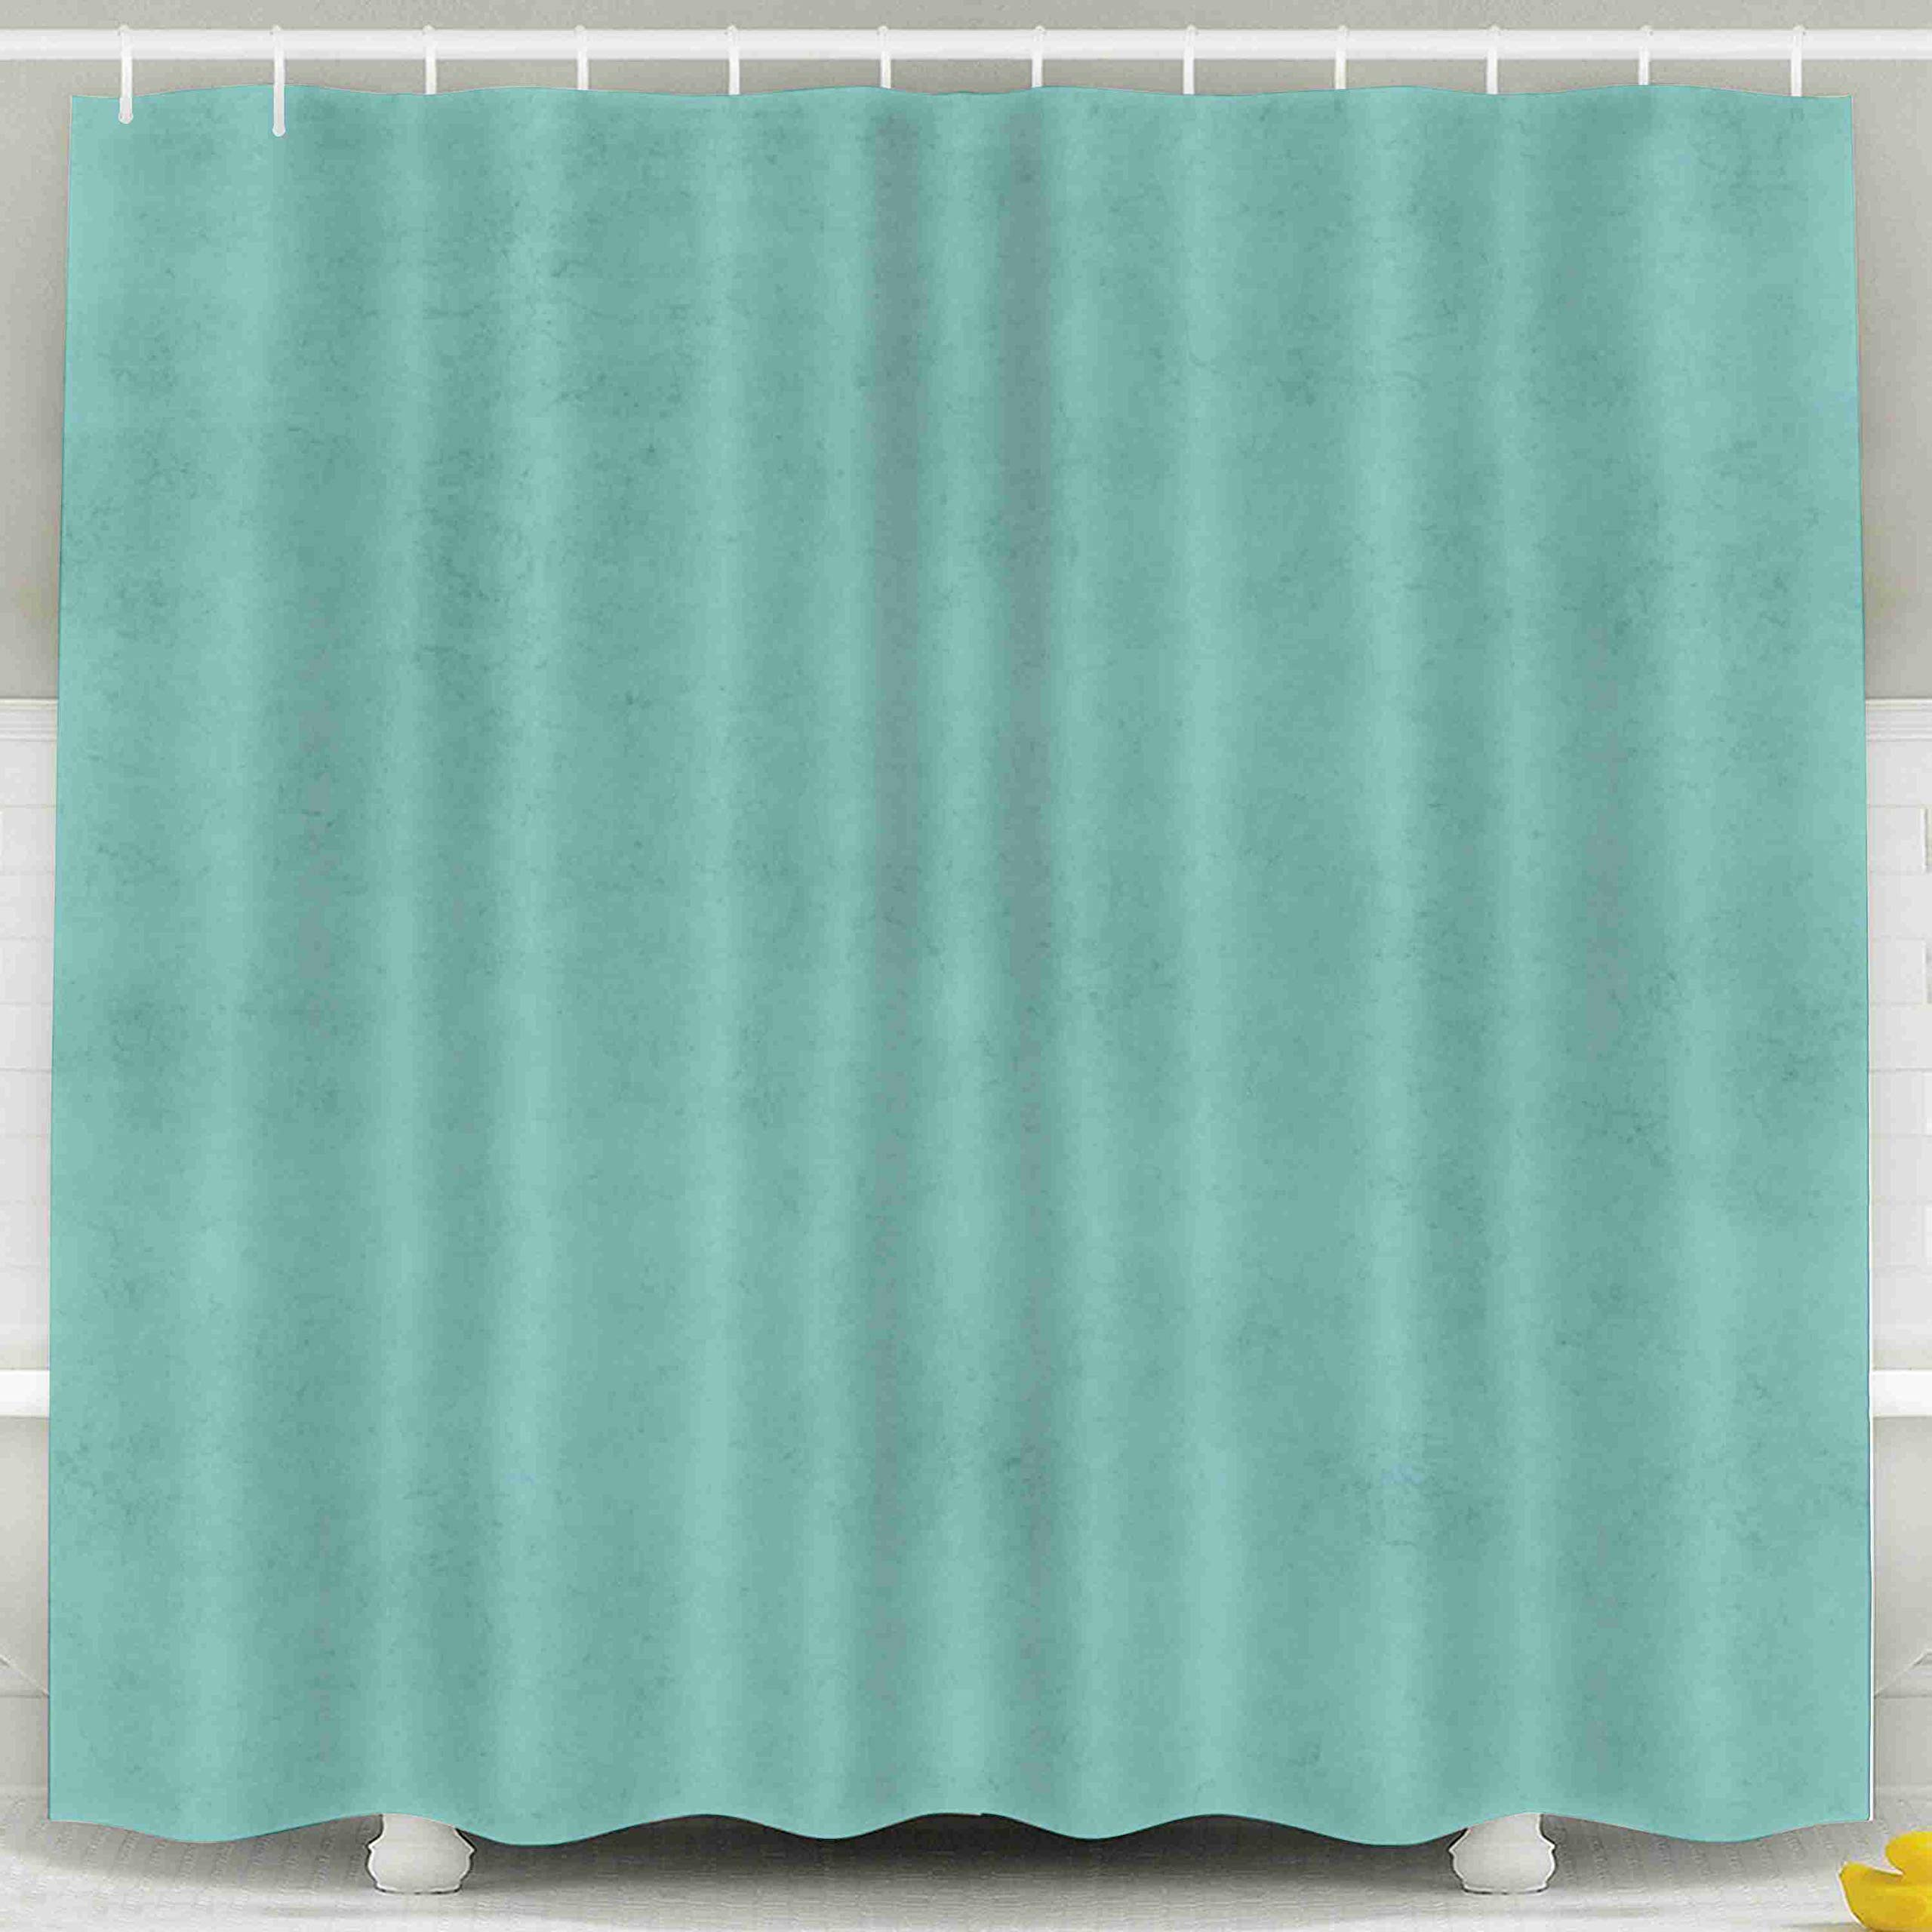 Jacrane Waterproof Fabric Bathroom Clear Shower Curtains Liner with Hooks Vintage Aqua Blue Green Turquoise Parchment Paper Background Texture 72X72Inch,Yellow Green